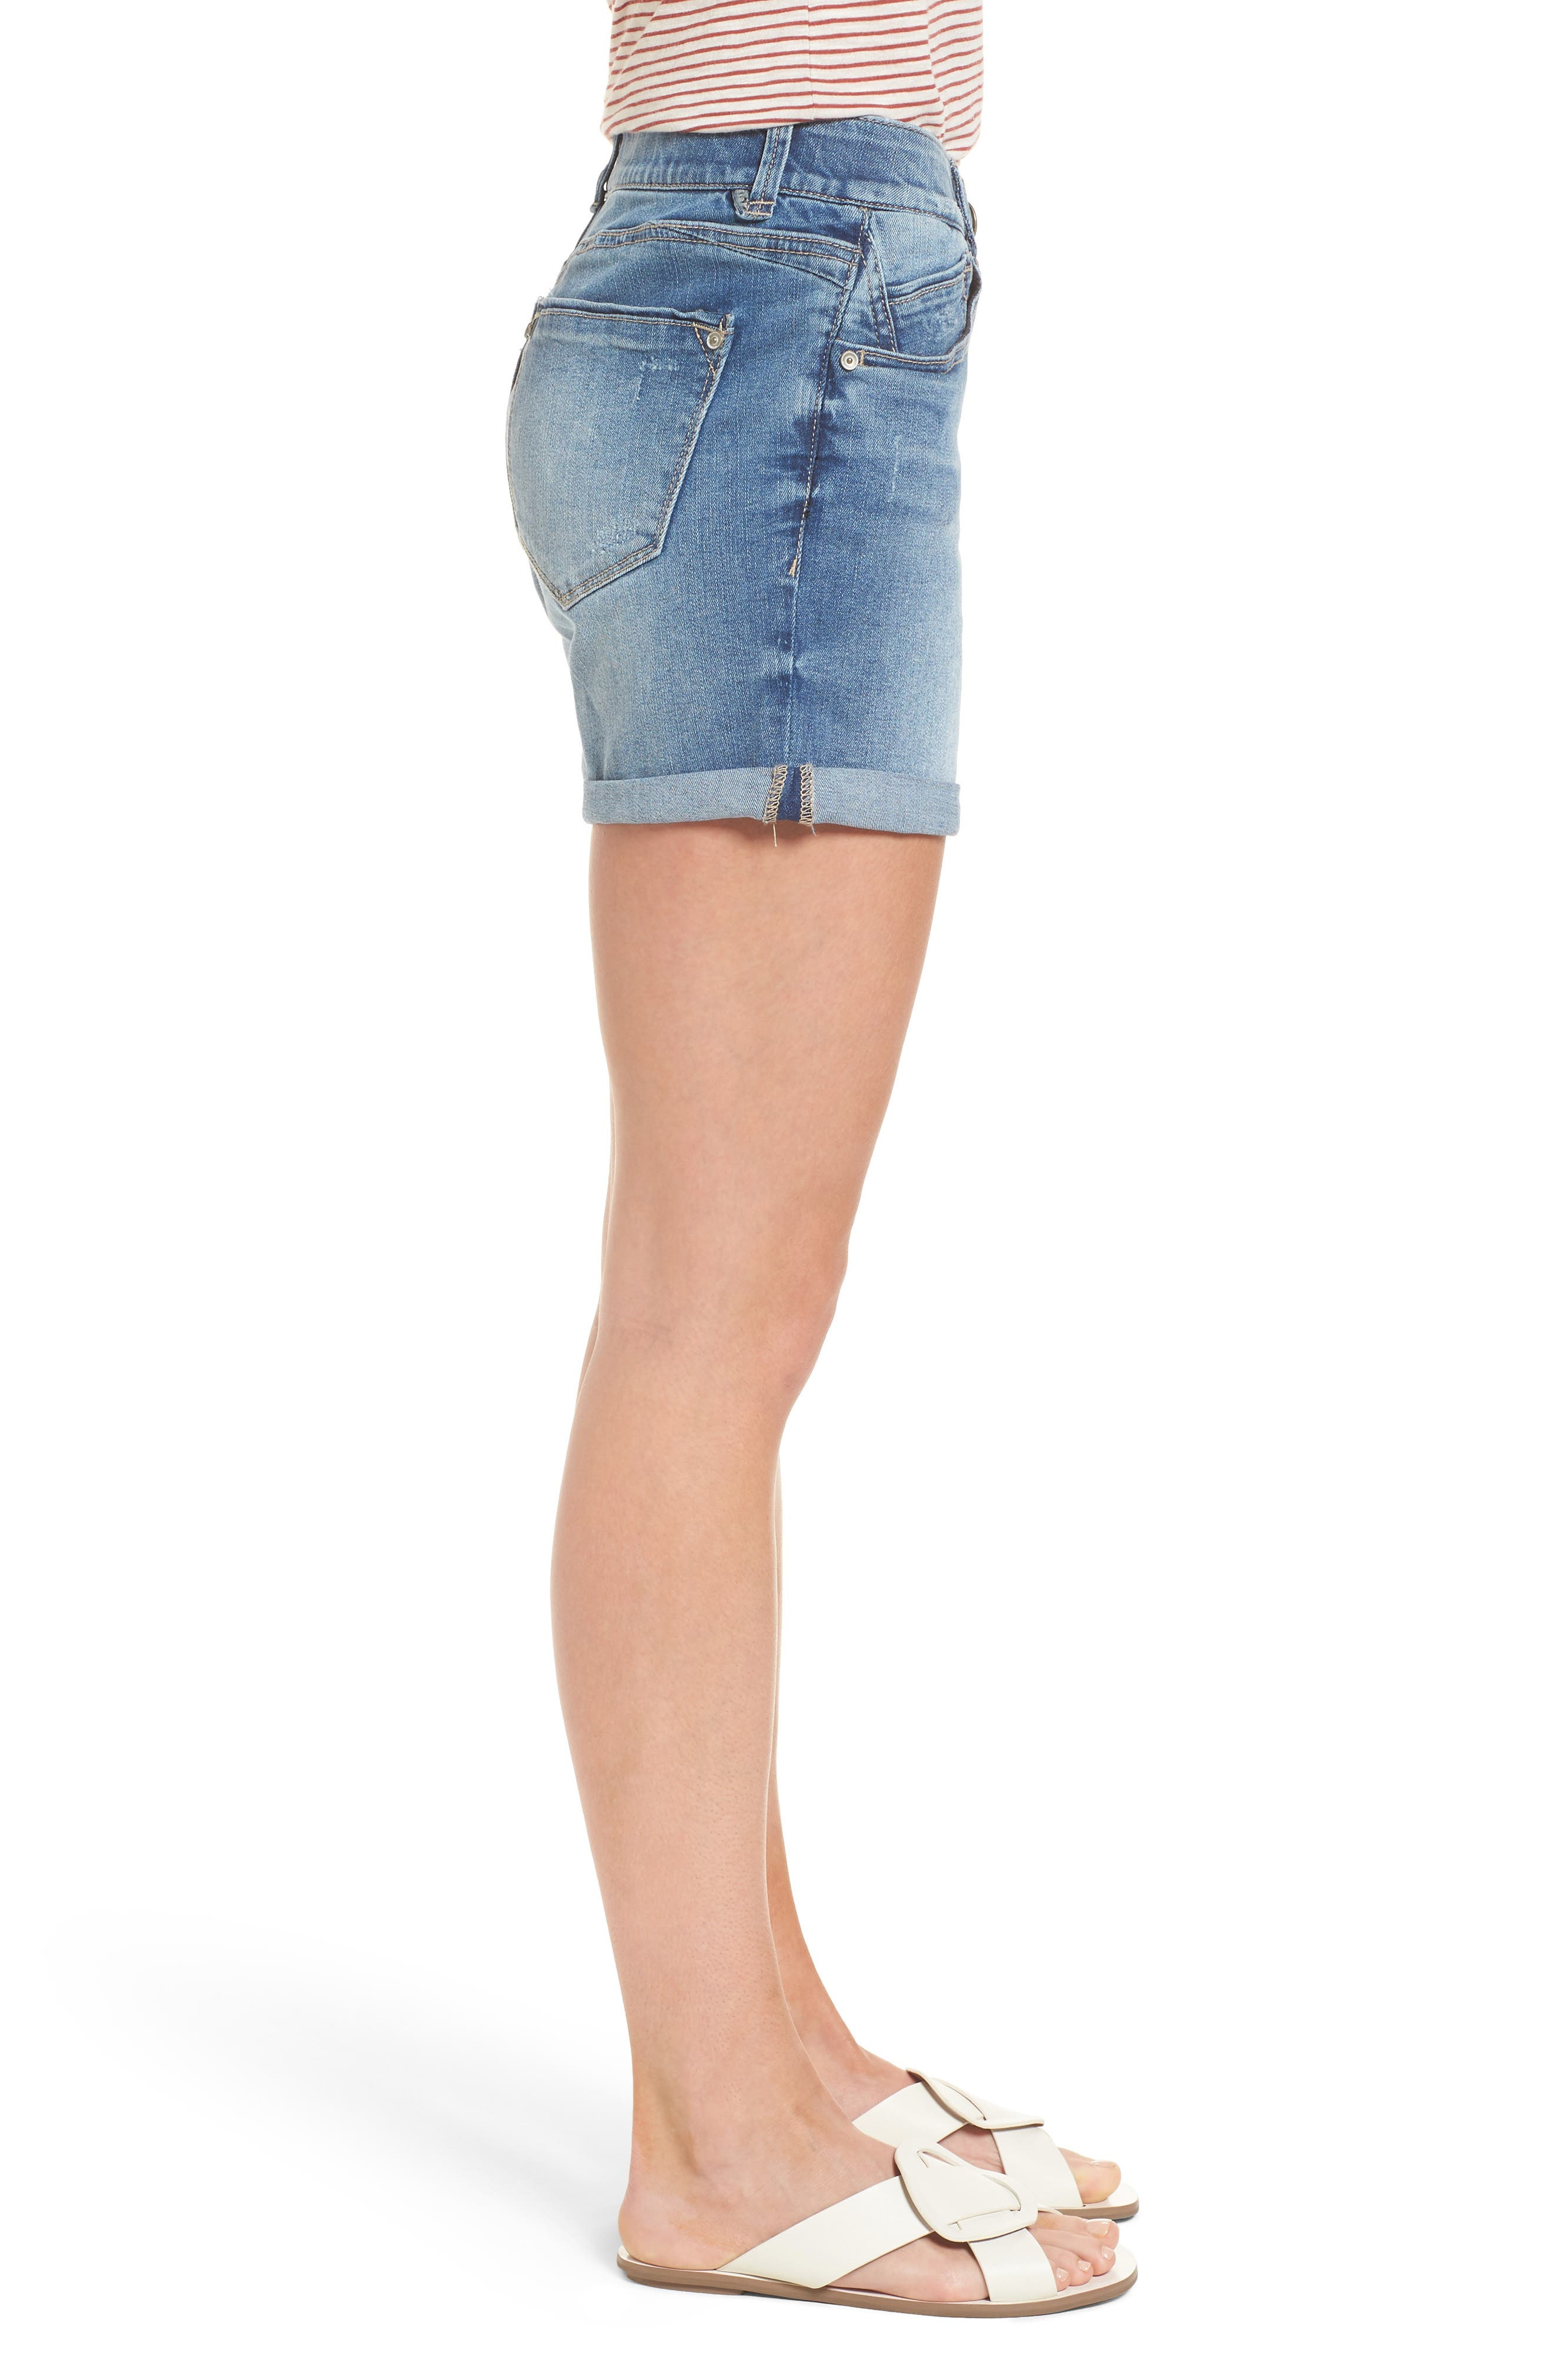 Ab-solution Denim Shorts,                             Alternate thumbnail 3, color,                             Light Blue